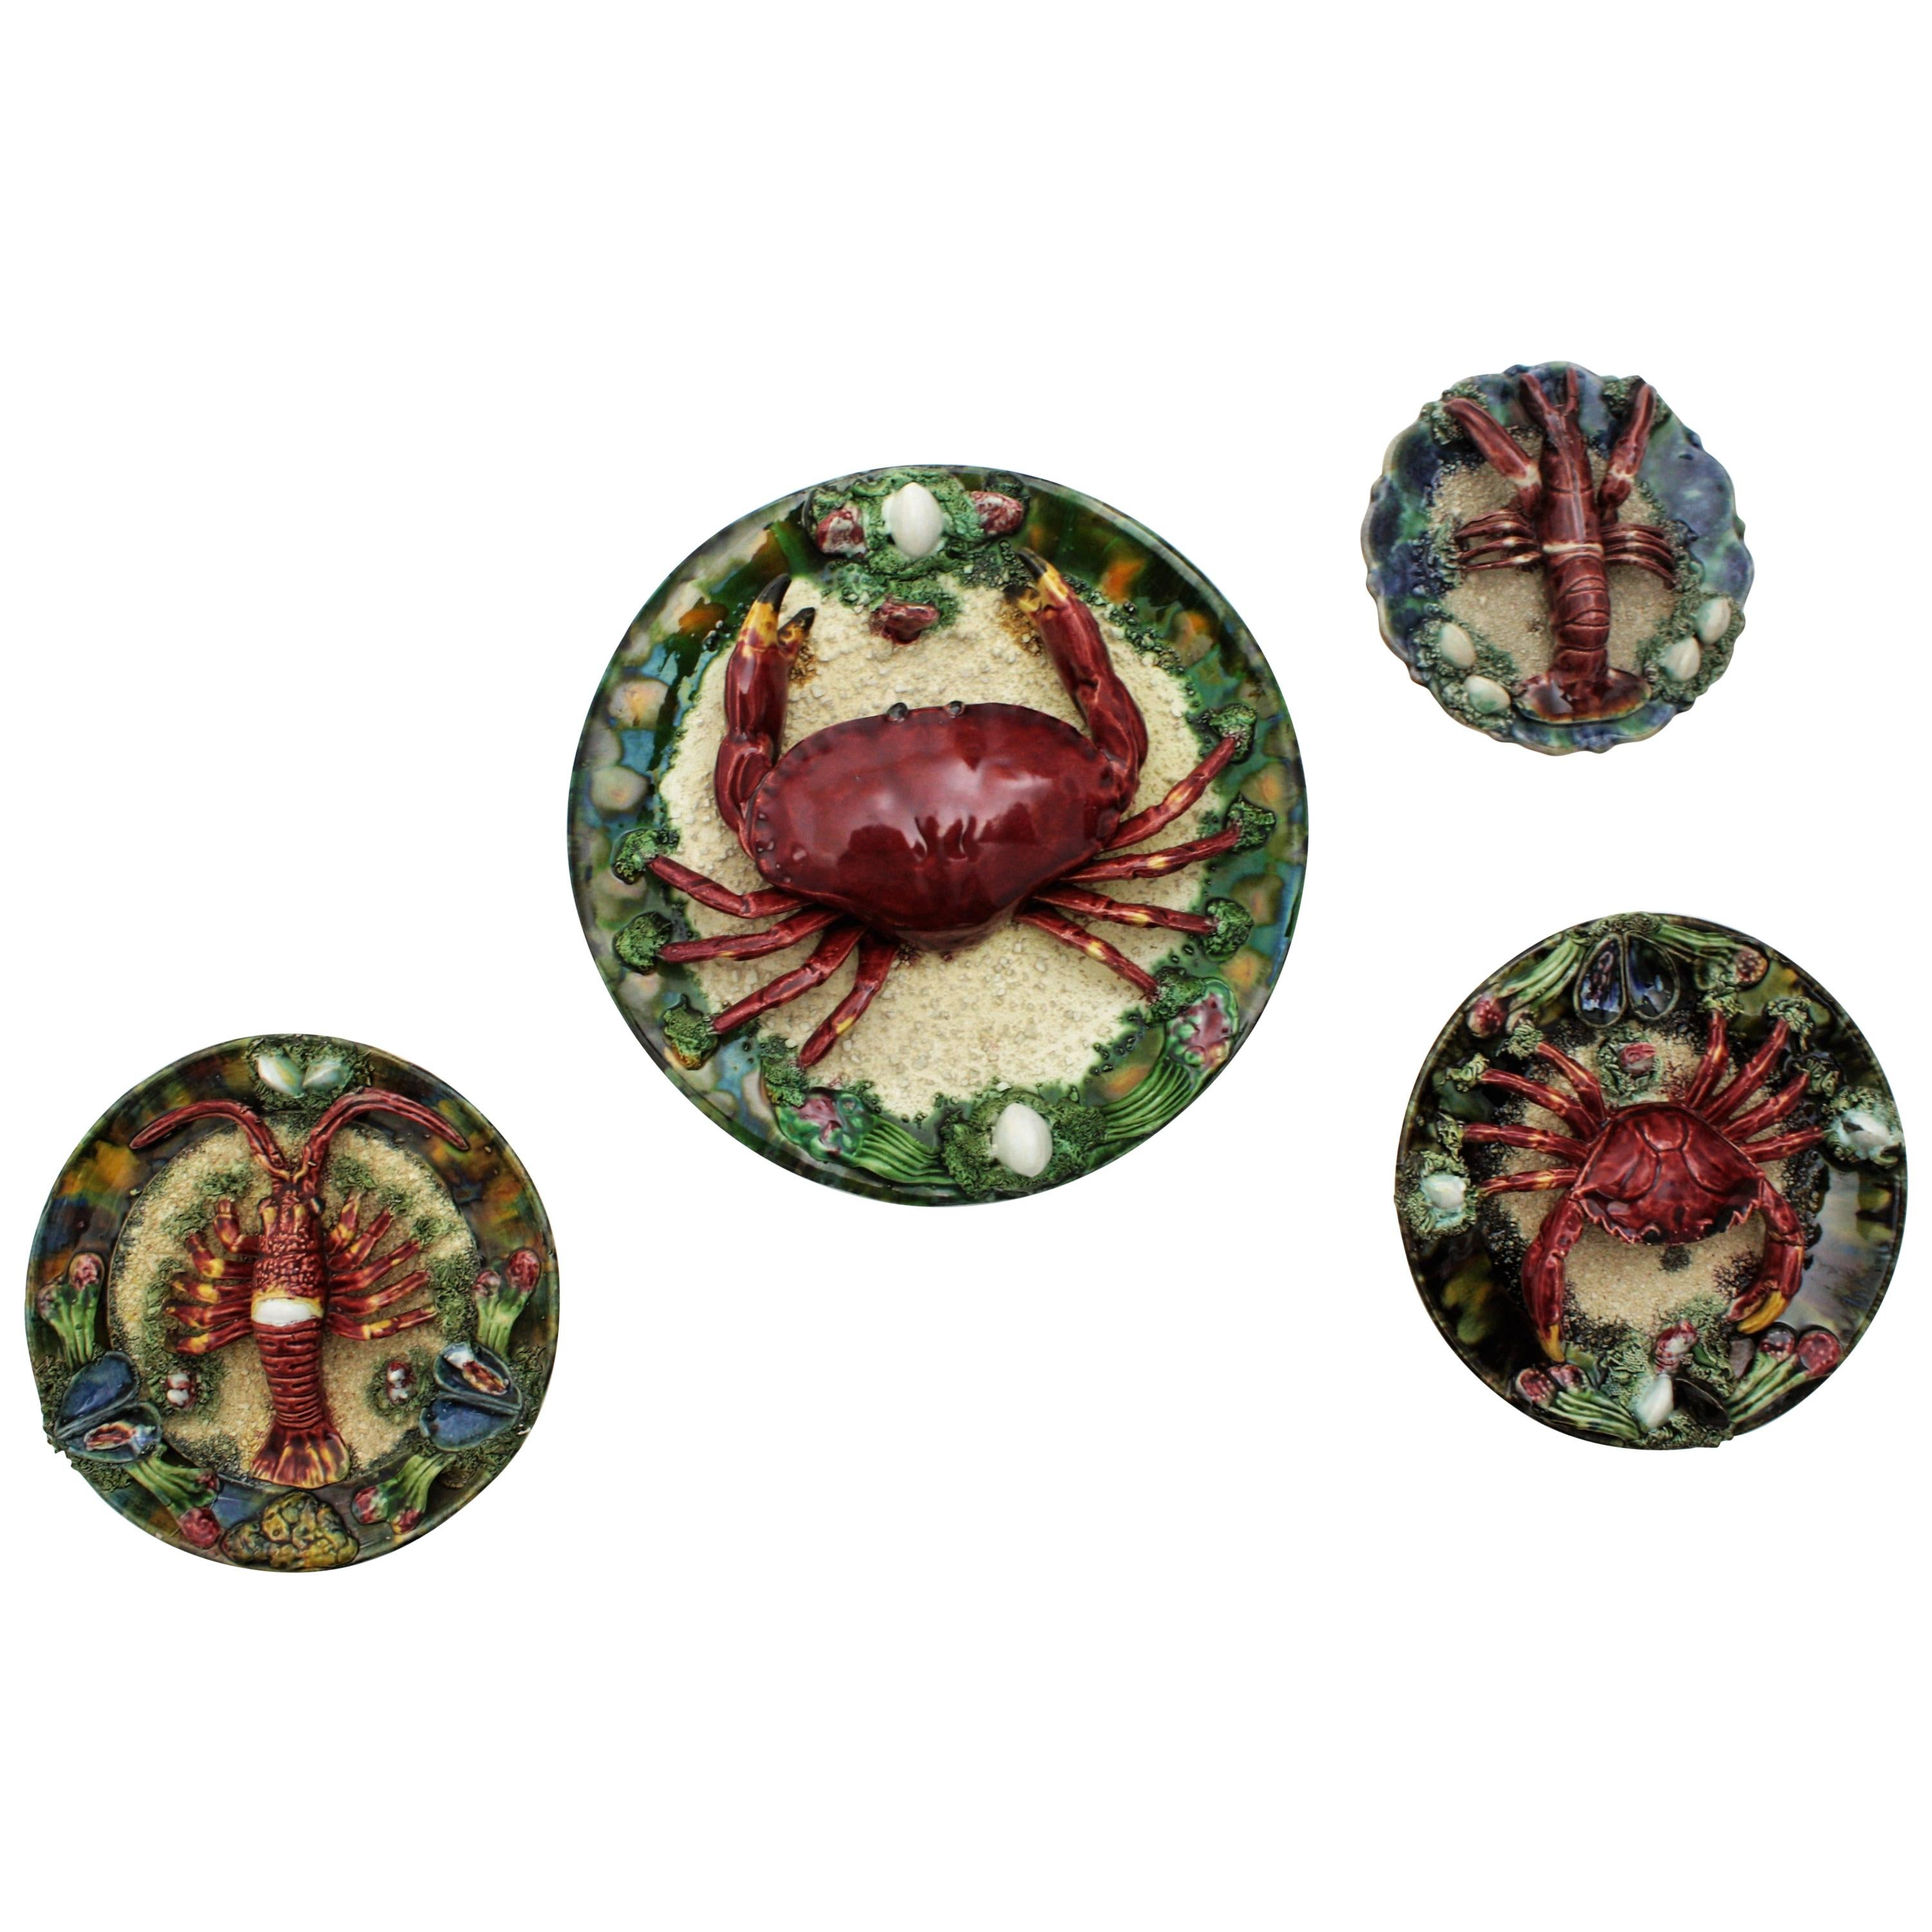 Majolica Trompe L'oeil Seafood Plates Wall Composition, Portugal, 1950s